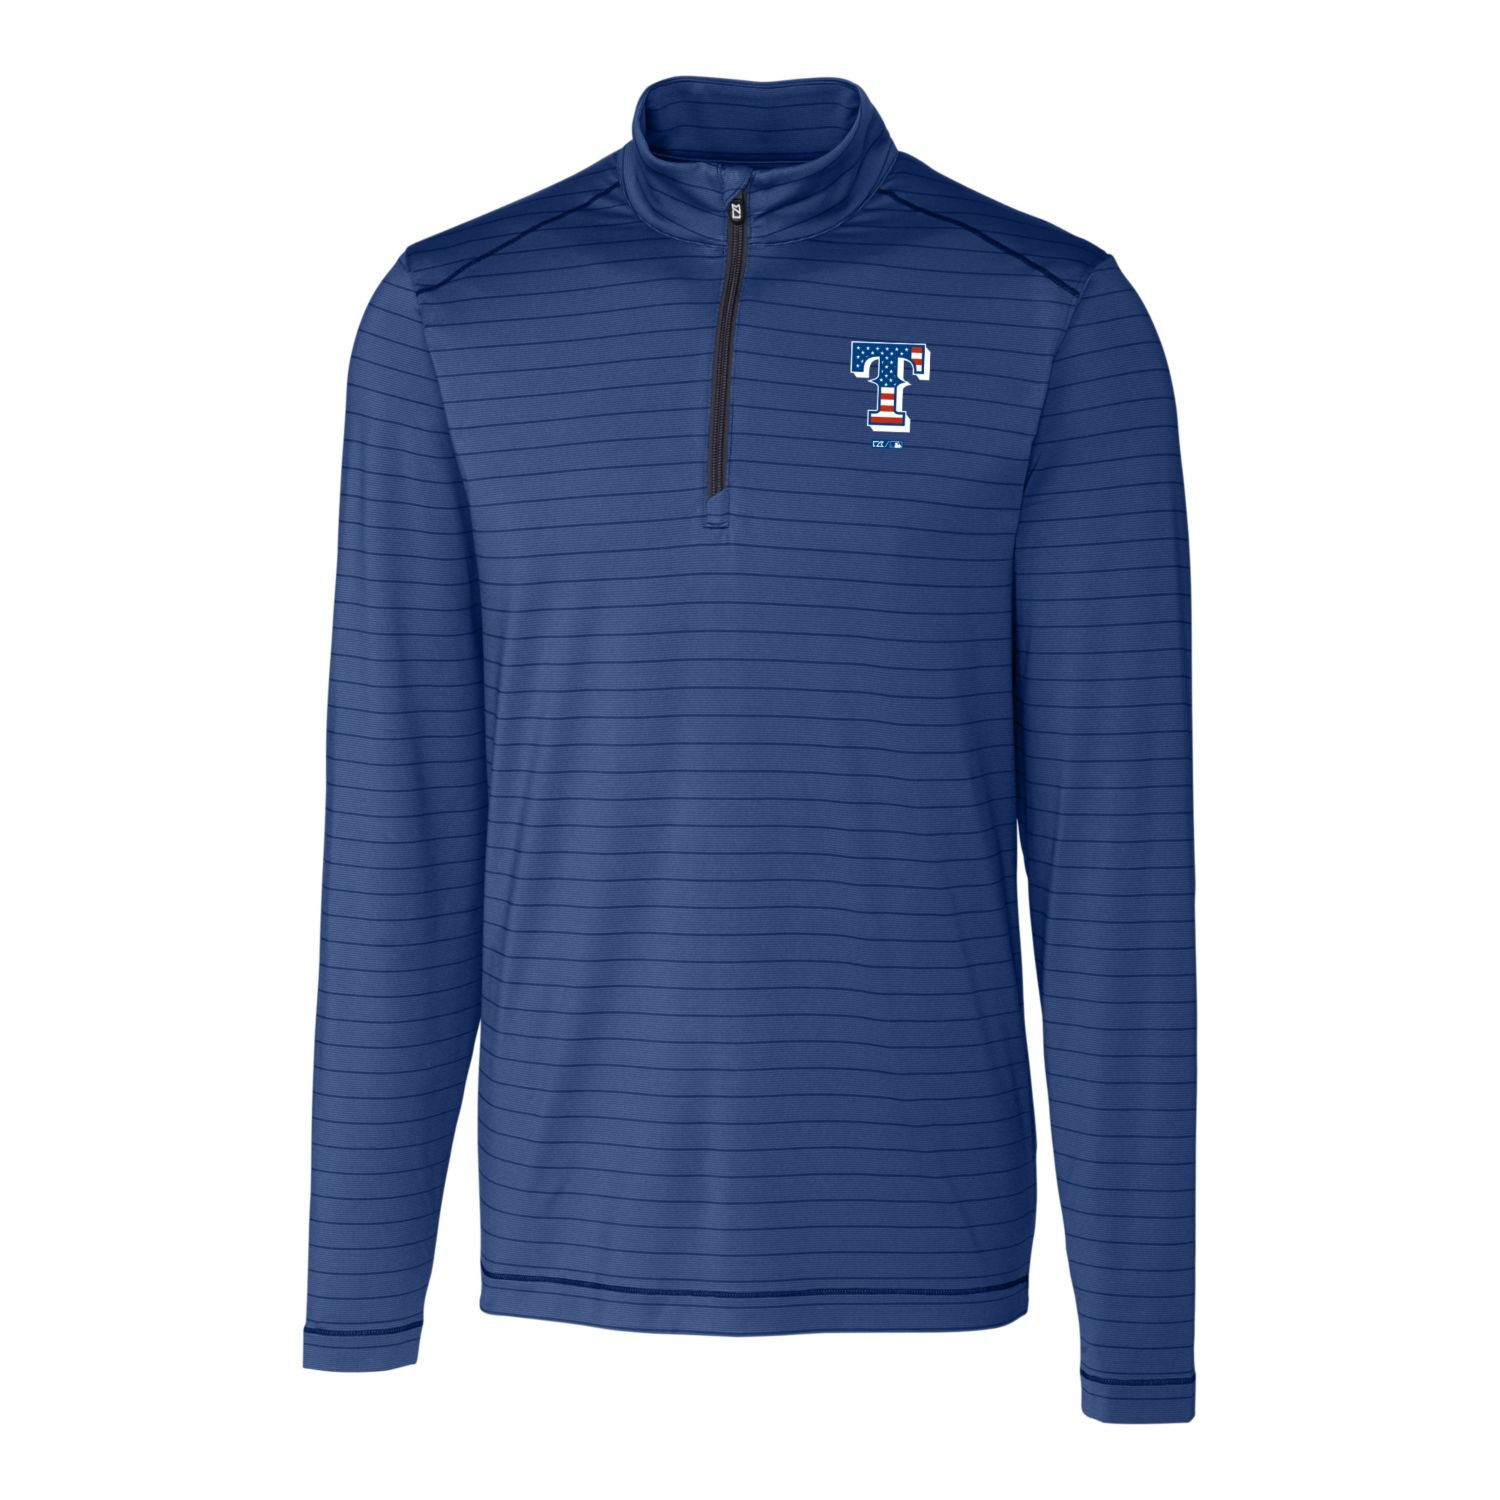 Texas Rangers Cutter & Buck Stars & Stripes Holman Stripe Half-Zip Pullover Jacket - Navy